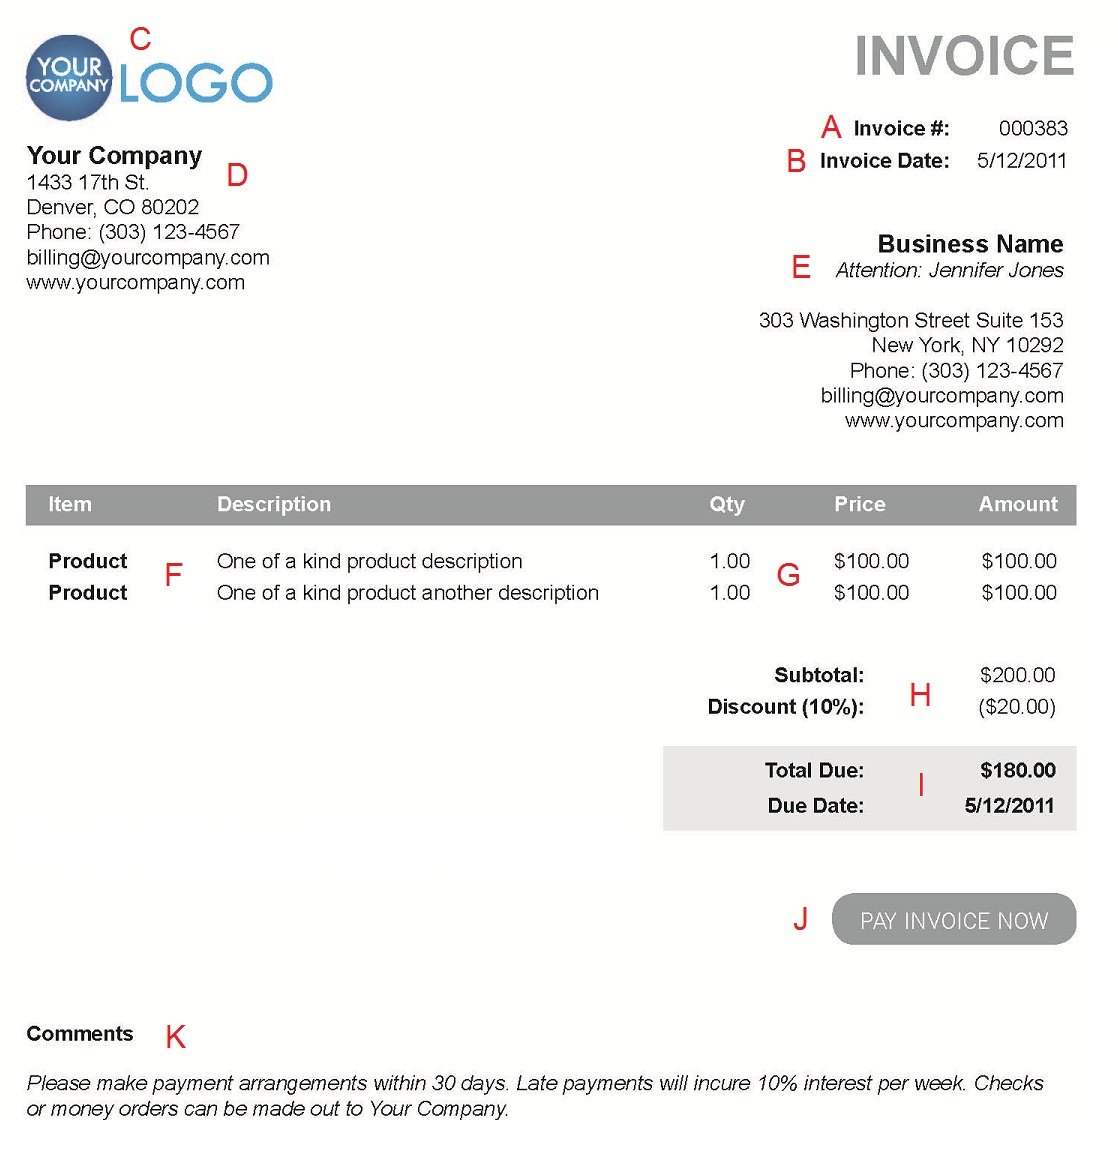 Sandiegolocksmithsus  Marvellous The  Different Sections Of An Electronic Payment Invoice With Exciting A  With Cool Vat Invoice Also What Is A Proforma Invoice In Addition Invoice Template Free And What Is Invoice As Well As Invoice Meaning Additionally How To Write An Invoice From Paysimplecom With Sandiegolocksmithsus  Exciting The  Different Sections Of An Electronic Payment Invoice With Cool A  And Marvellous Vat Invoice Also What Is A Proforma Invoice In Addition Invoice Template Free From Paysimplecom